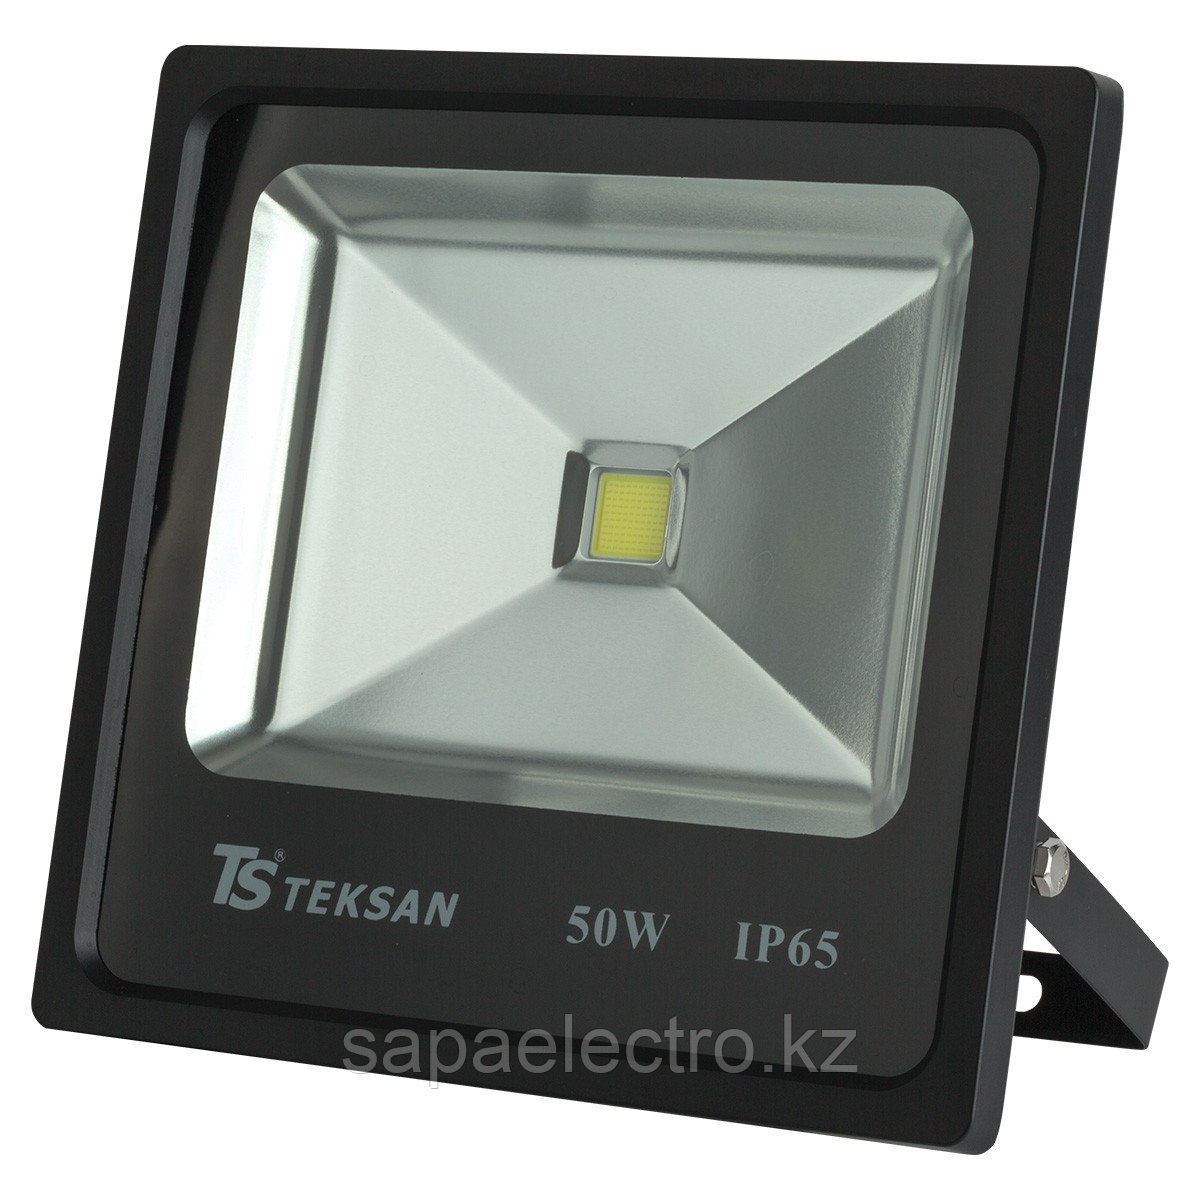 Прожектор LED TS050 50W 6000K BLACK (TS)10шт